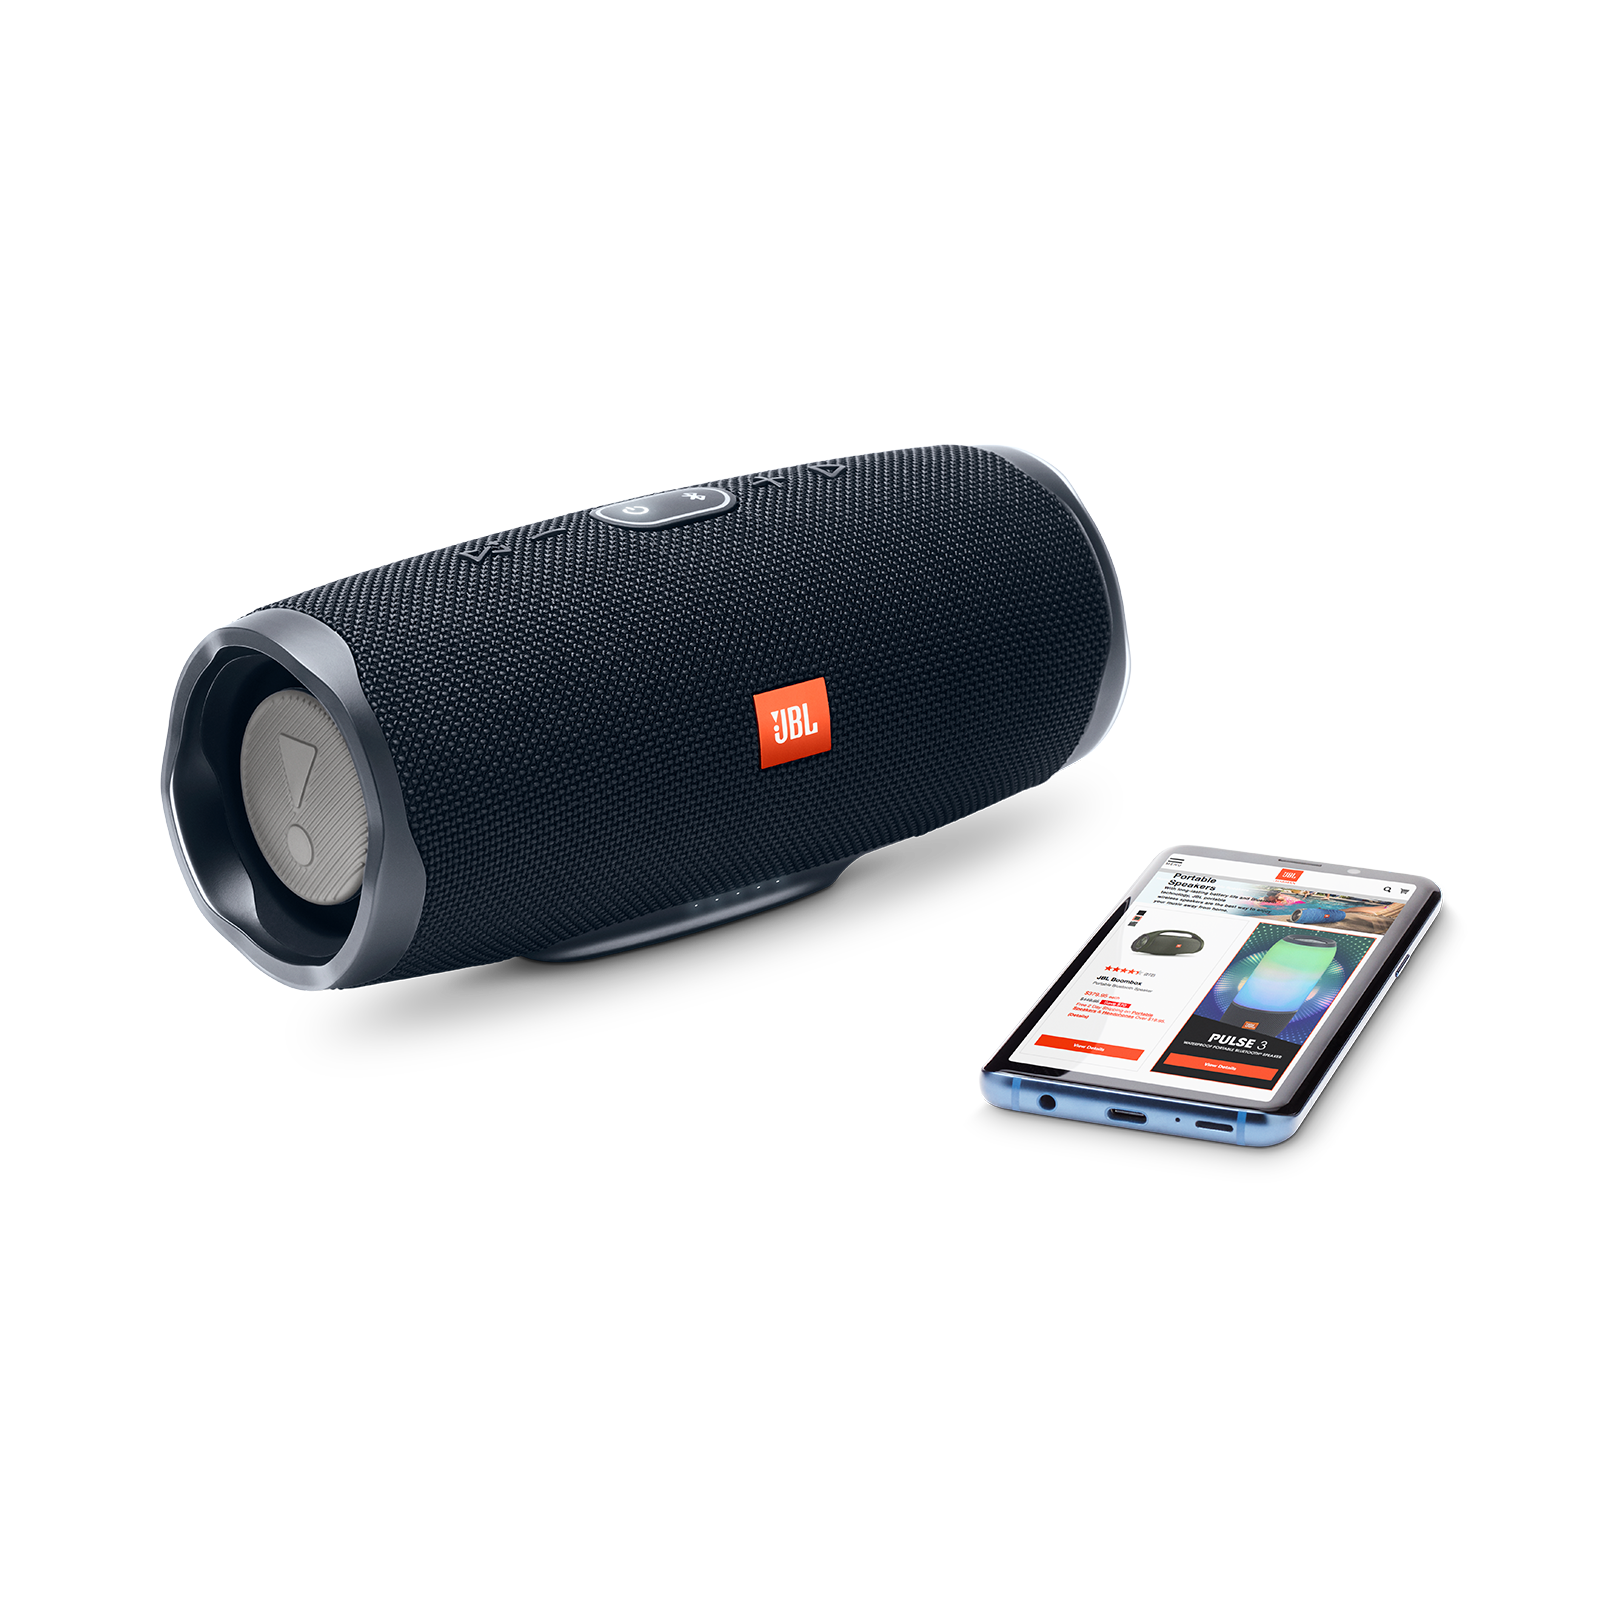 JBL Charge 4 - Black - Portable Bluetooth speaker - Detailshot 4